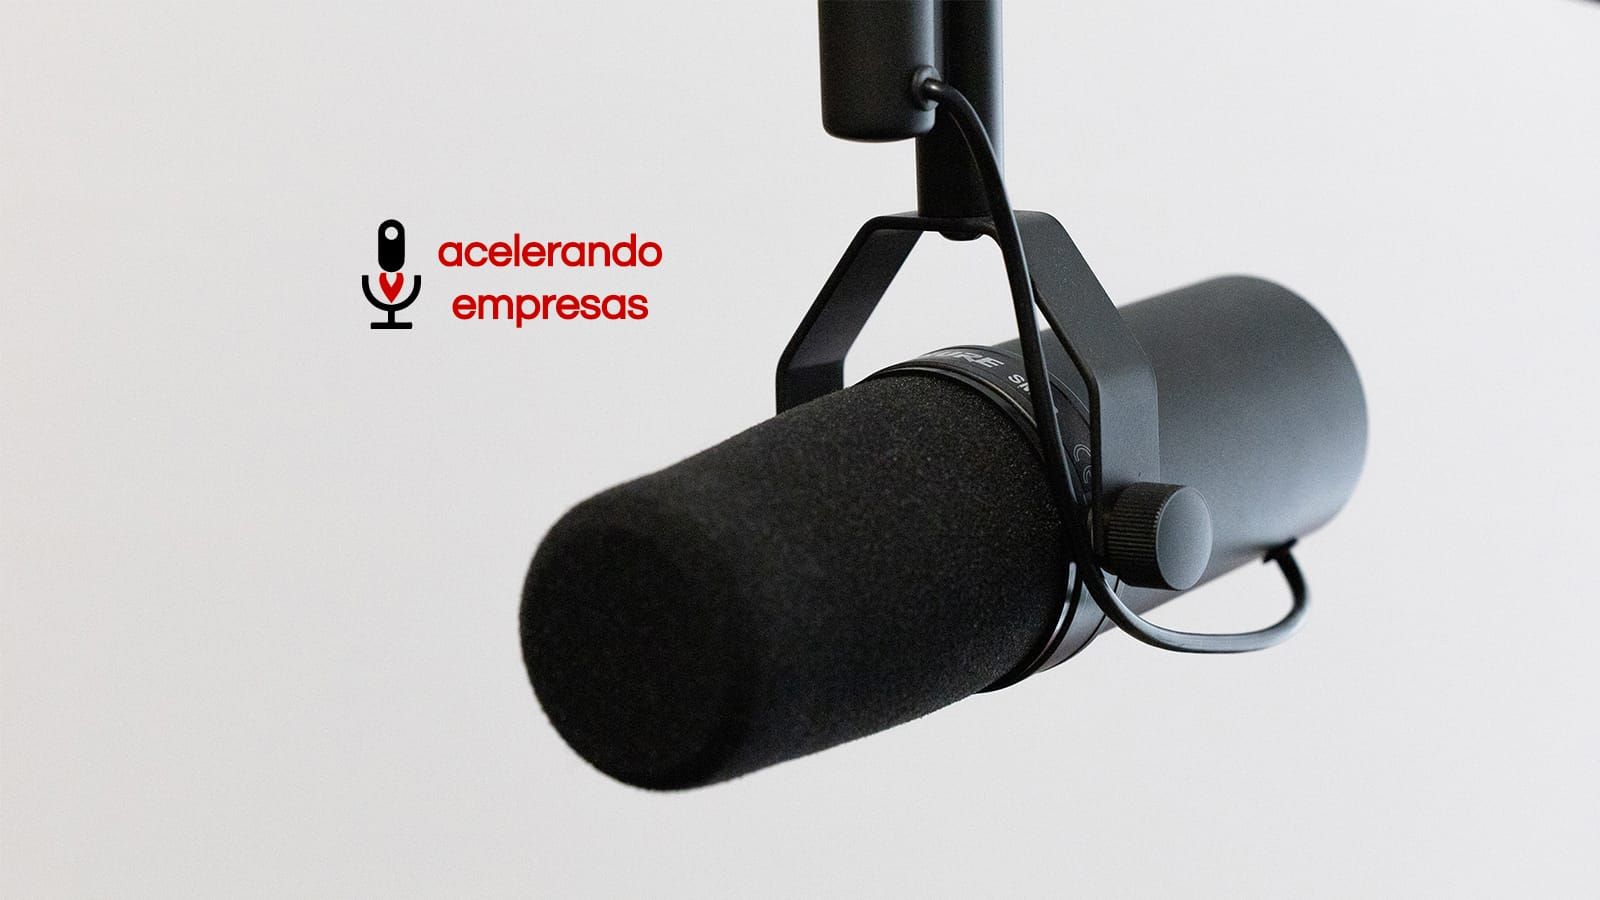 Podcast: Cledara in Spanish on Acelerando and Empresas